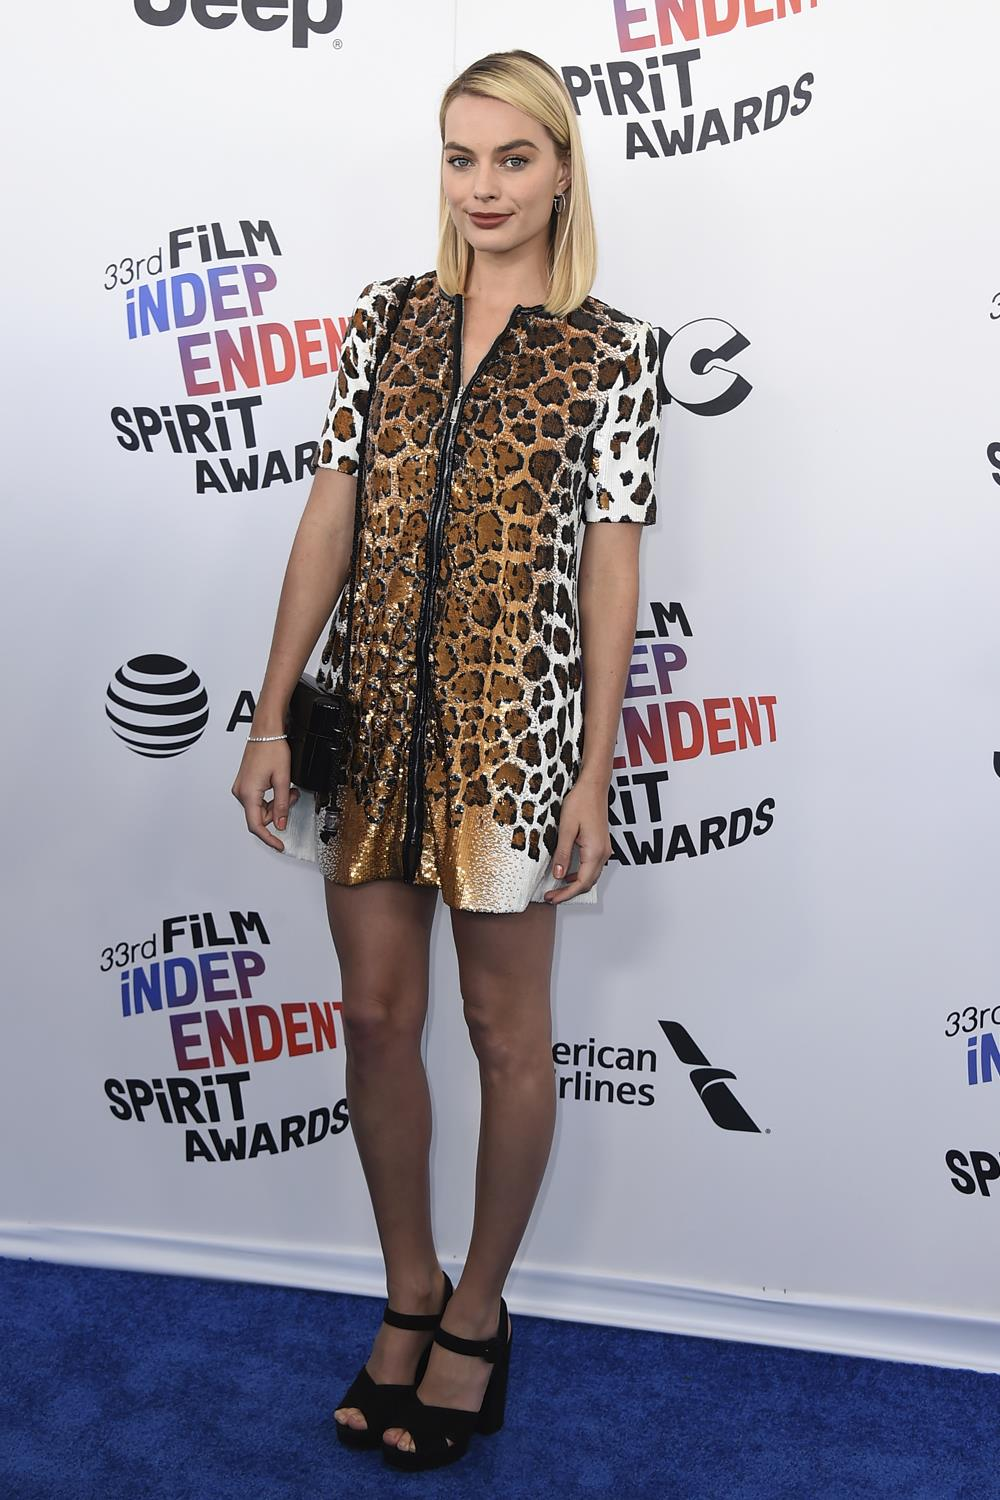 estampado leopardo Margot Robbie. Con medias